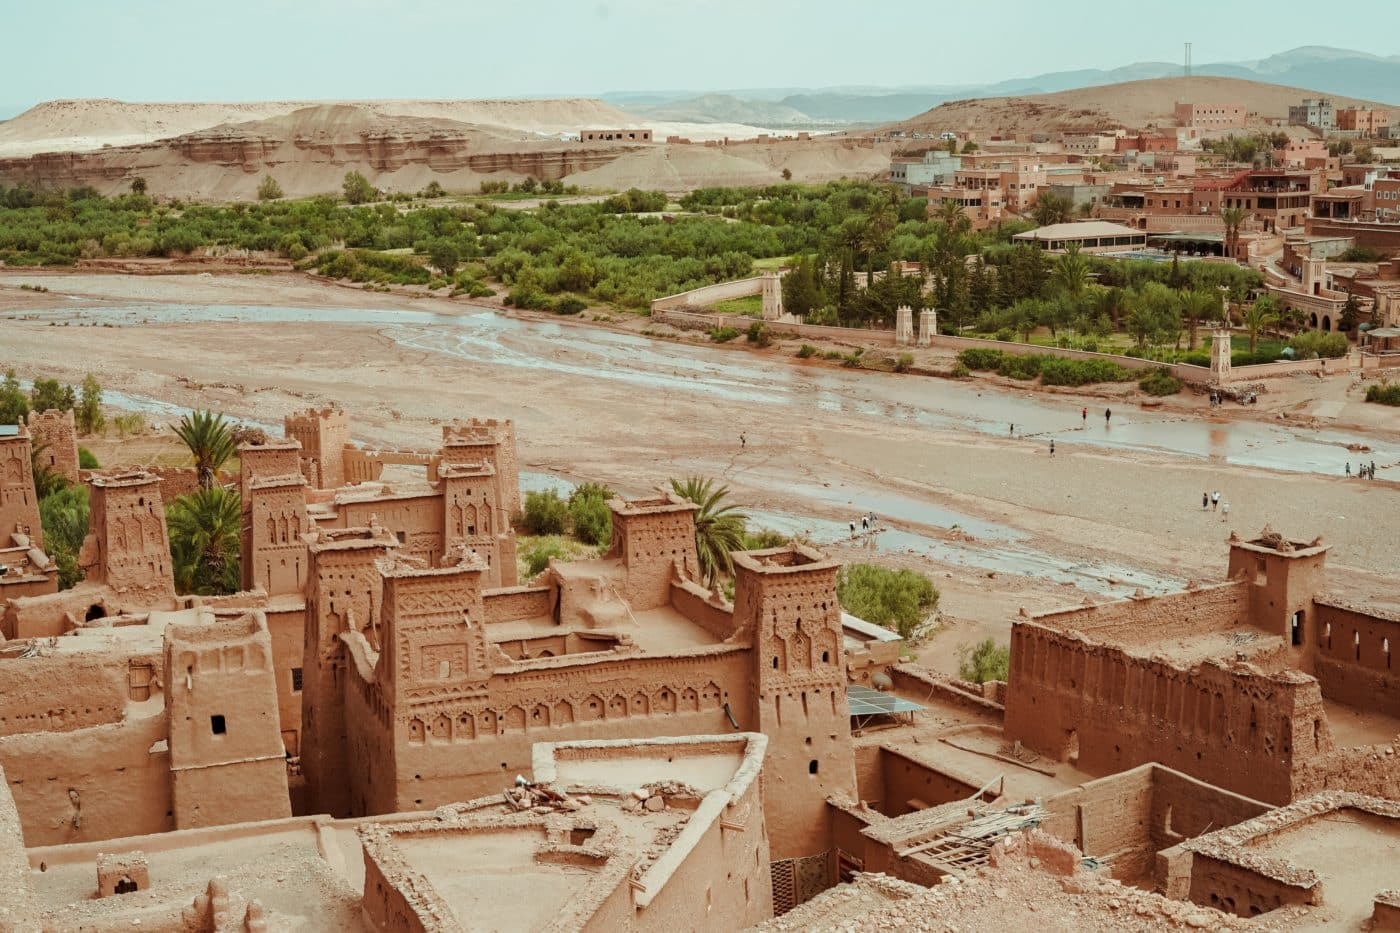 Guide to visiting Ait Ben Haddou, Morocco